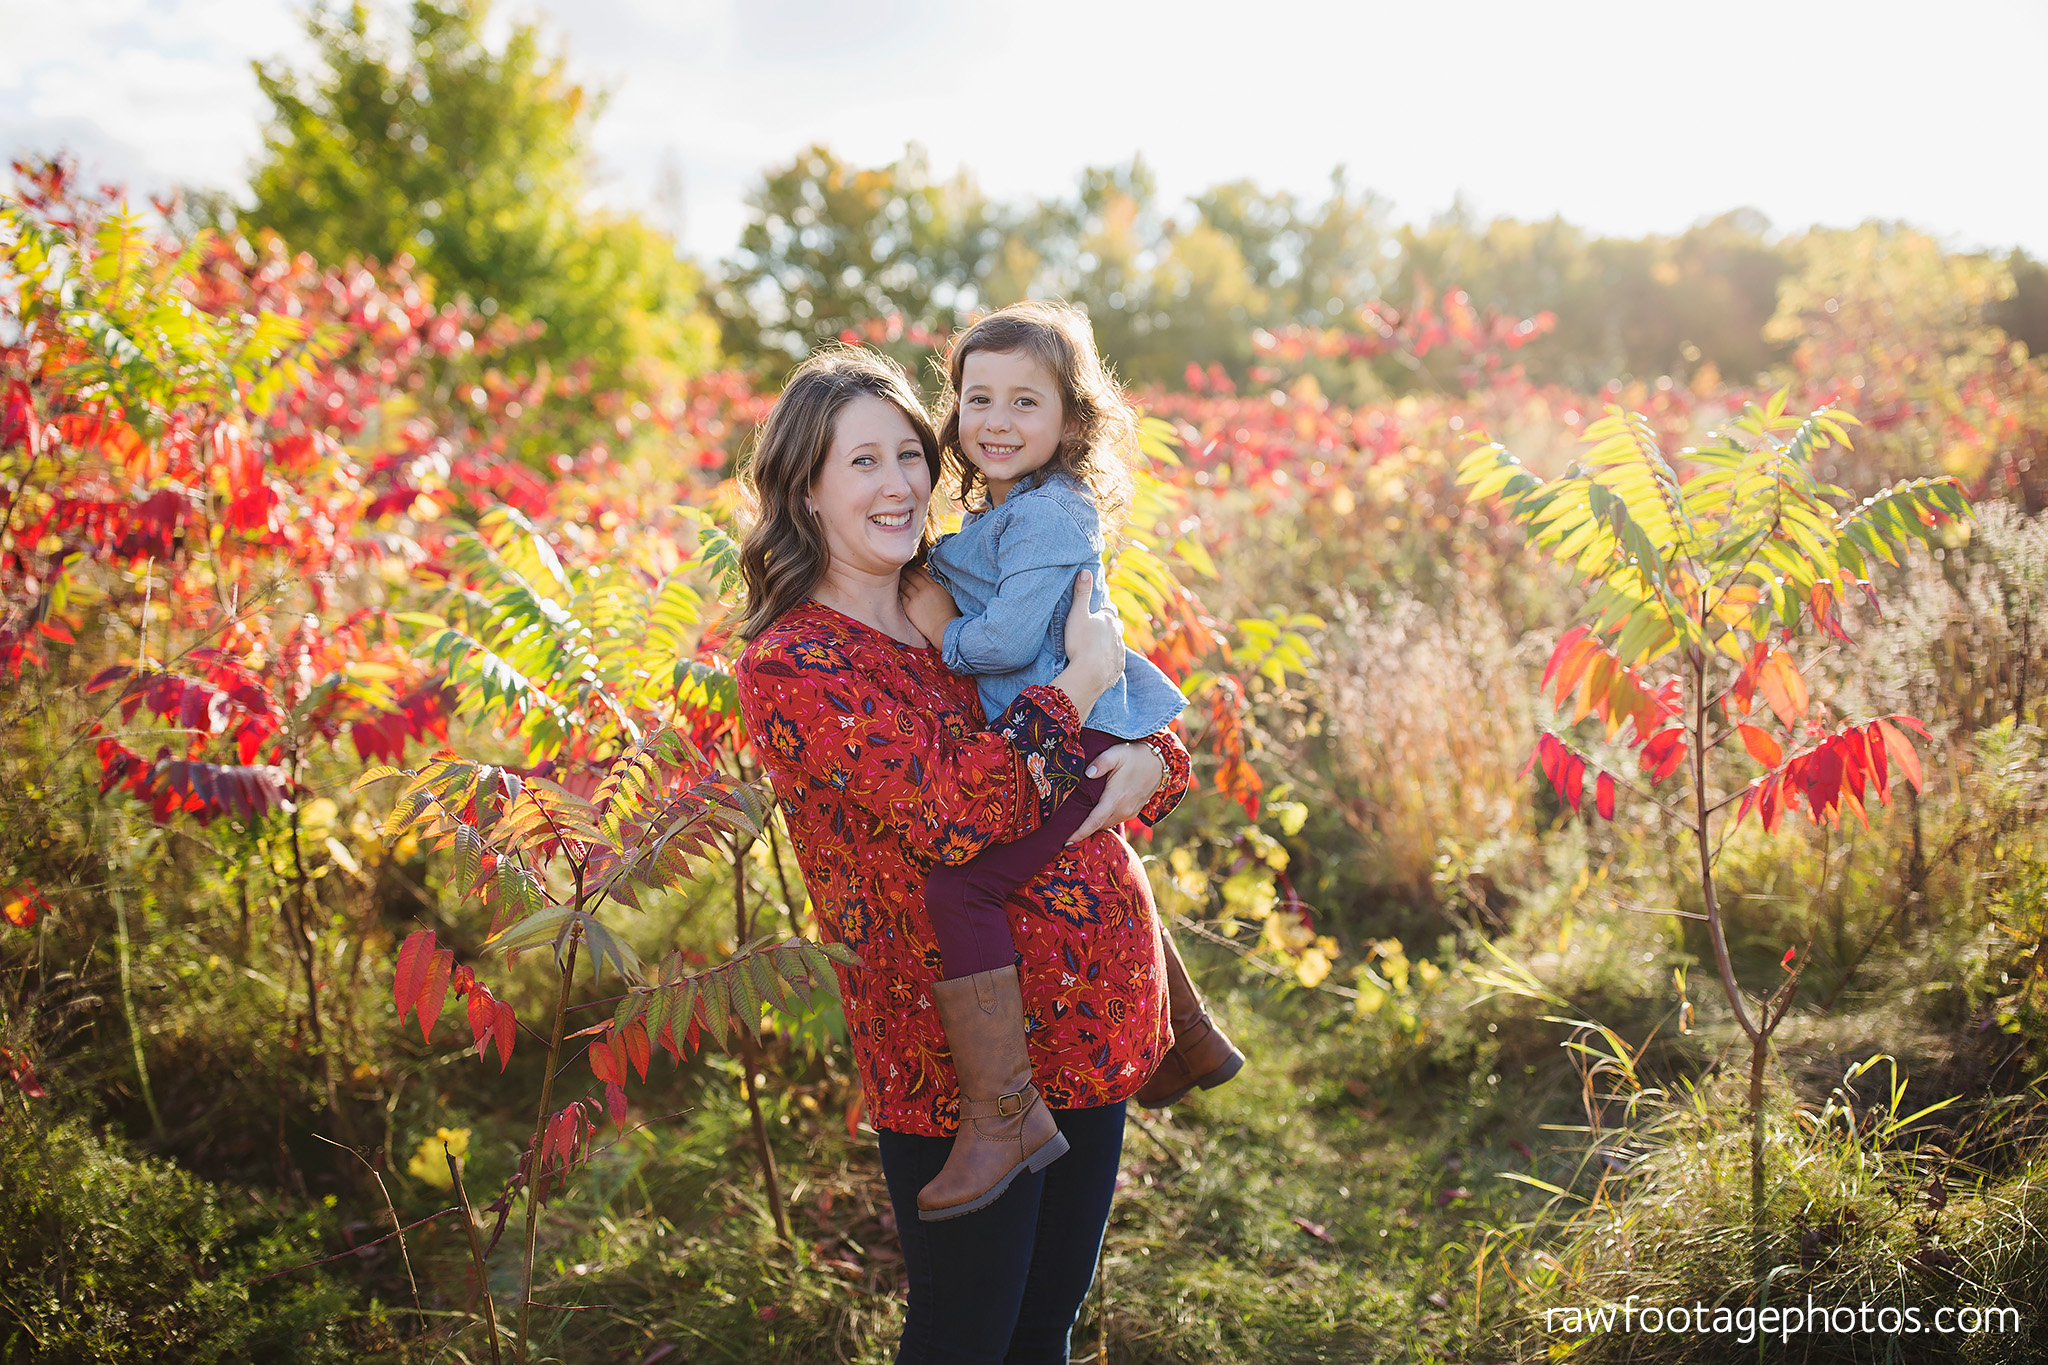 london_ontario_family_photographer-golden_hour_maternity_session-raw_footage_photography008.jpg